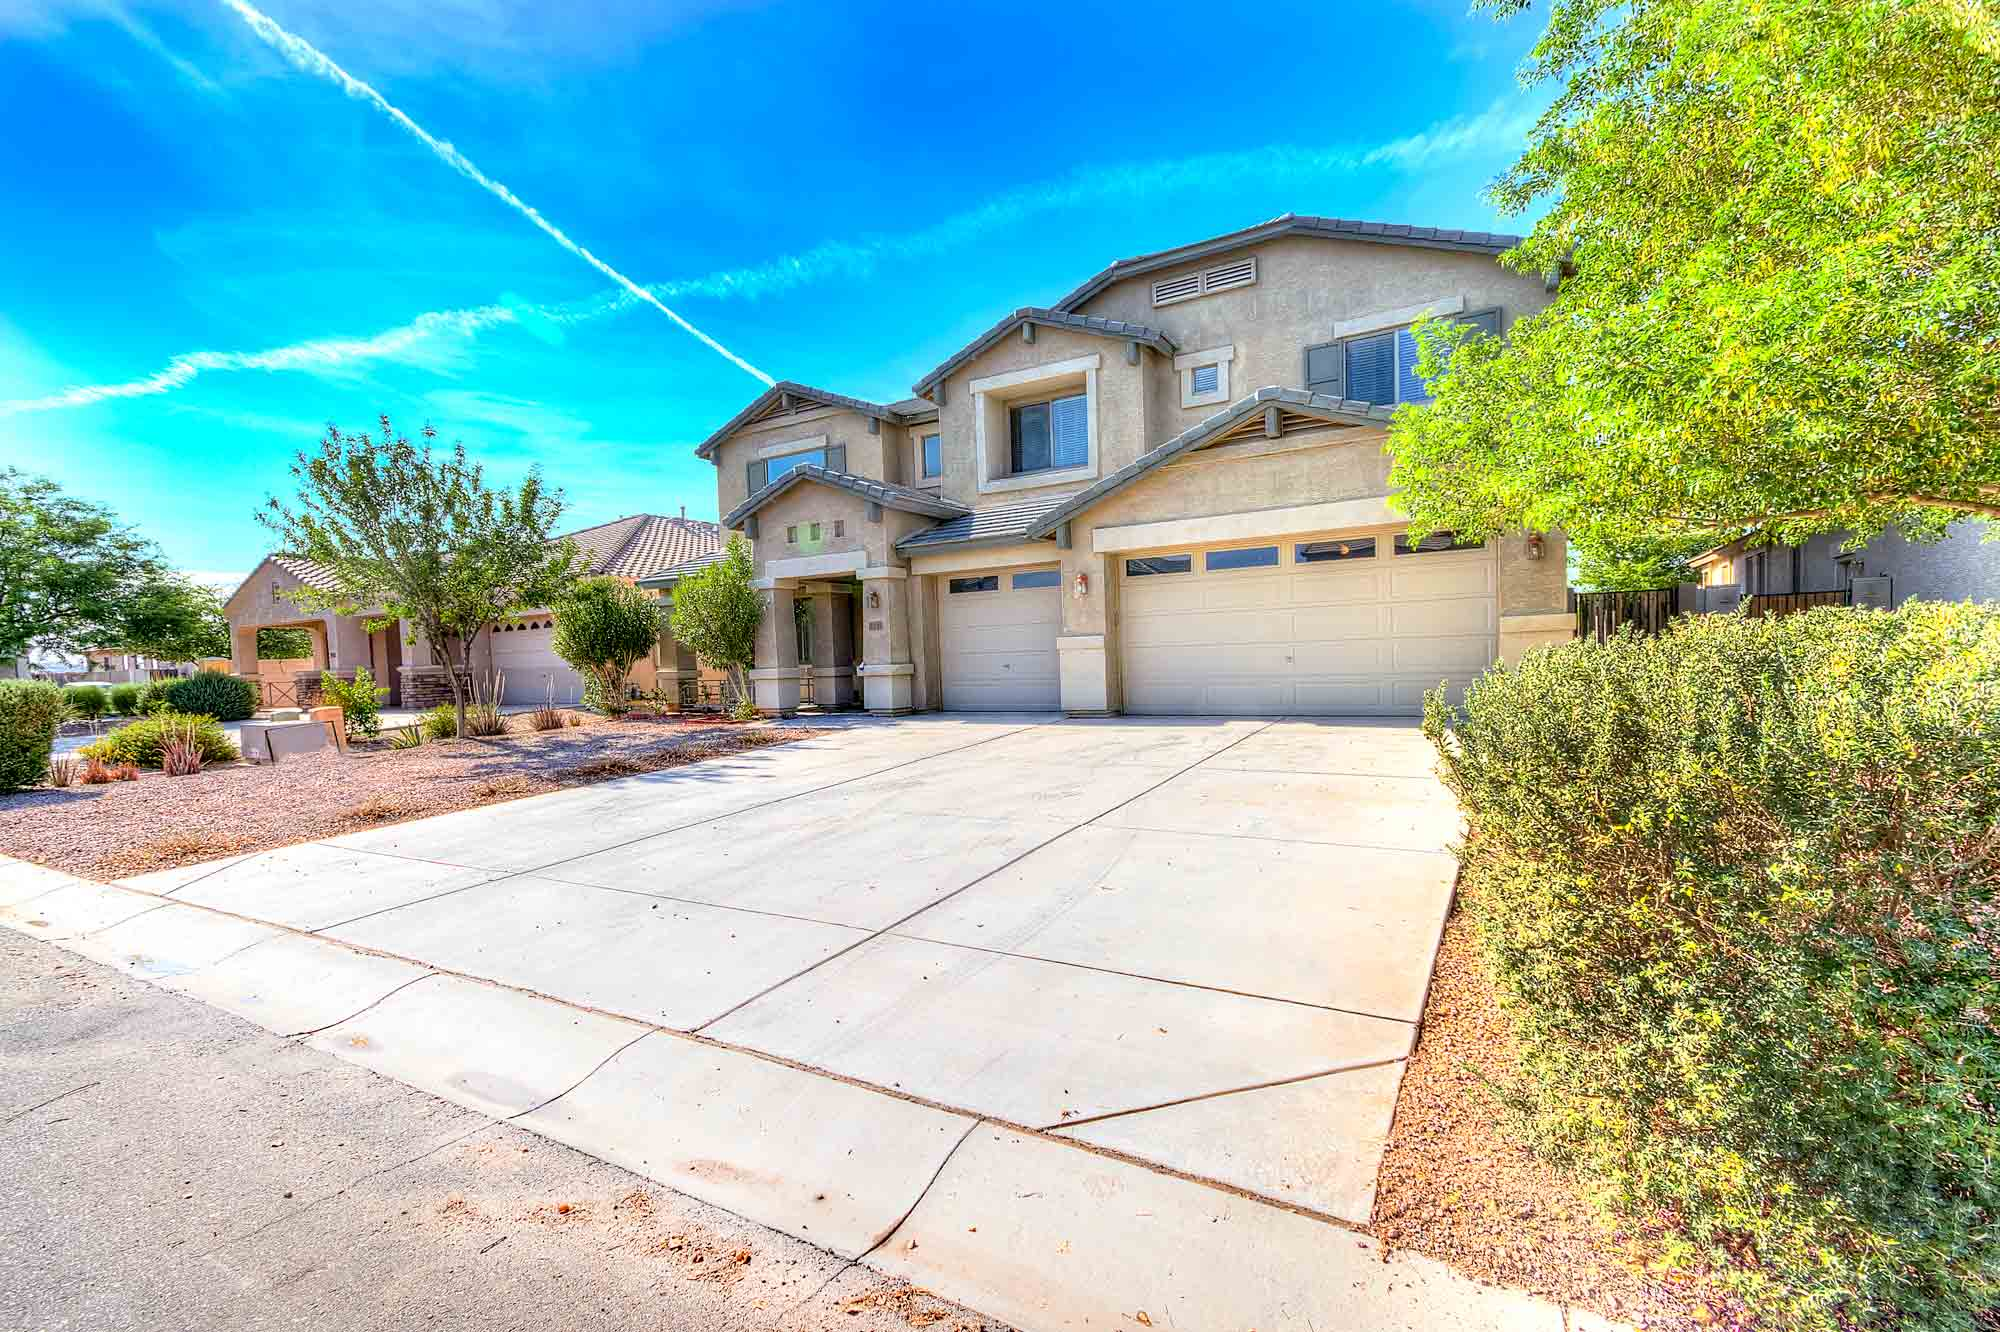 4 bedroom 2.5 bath home for sale in magic Ranch Florence AZ 85132